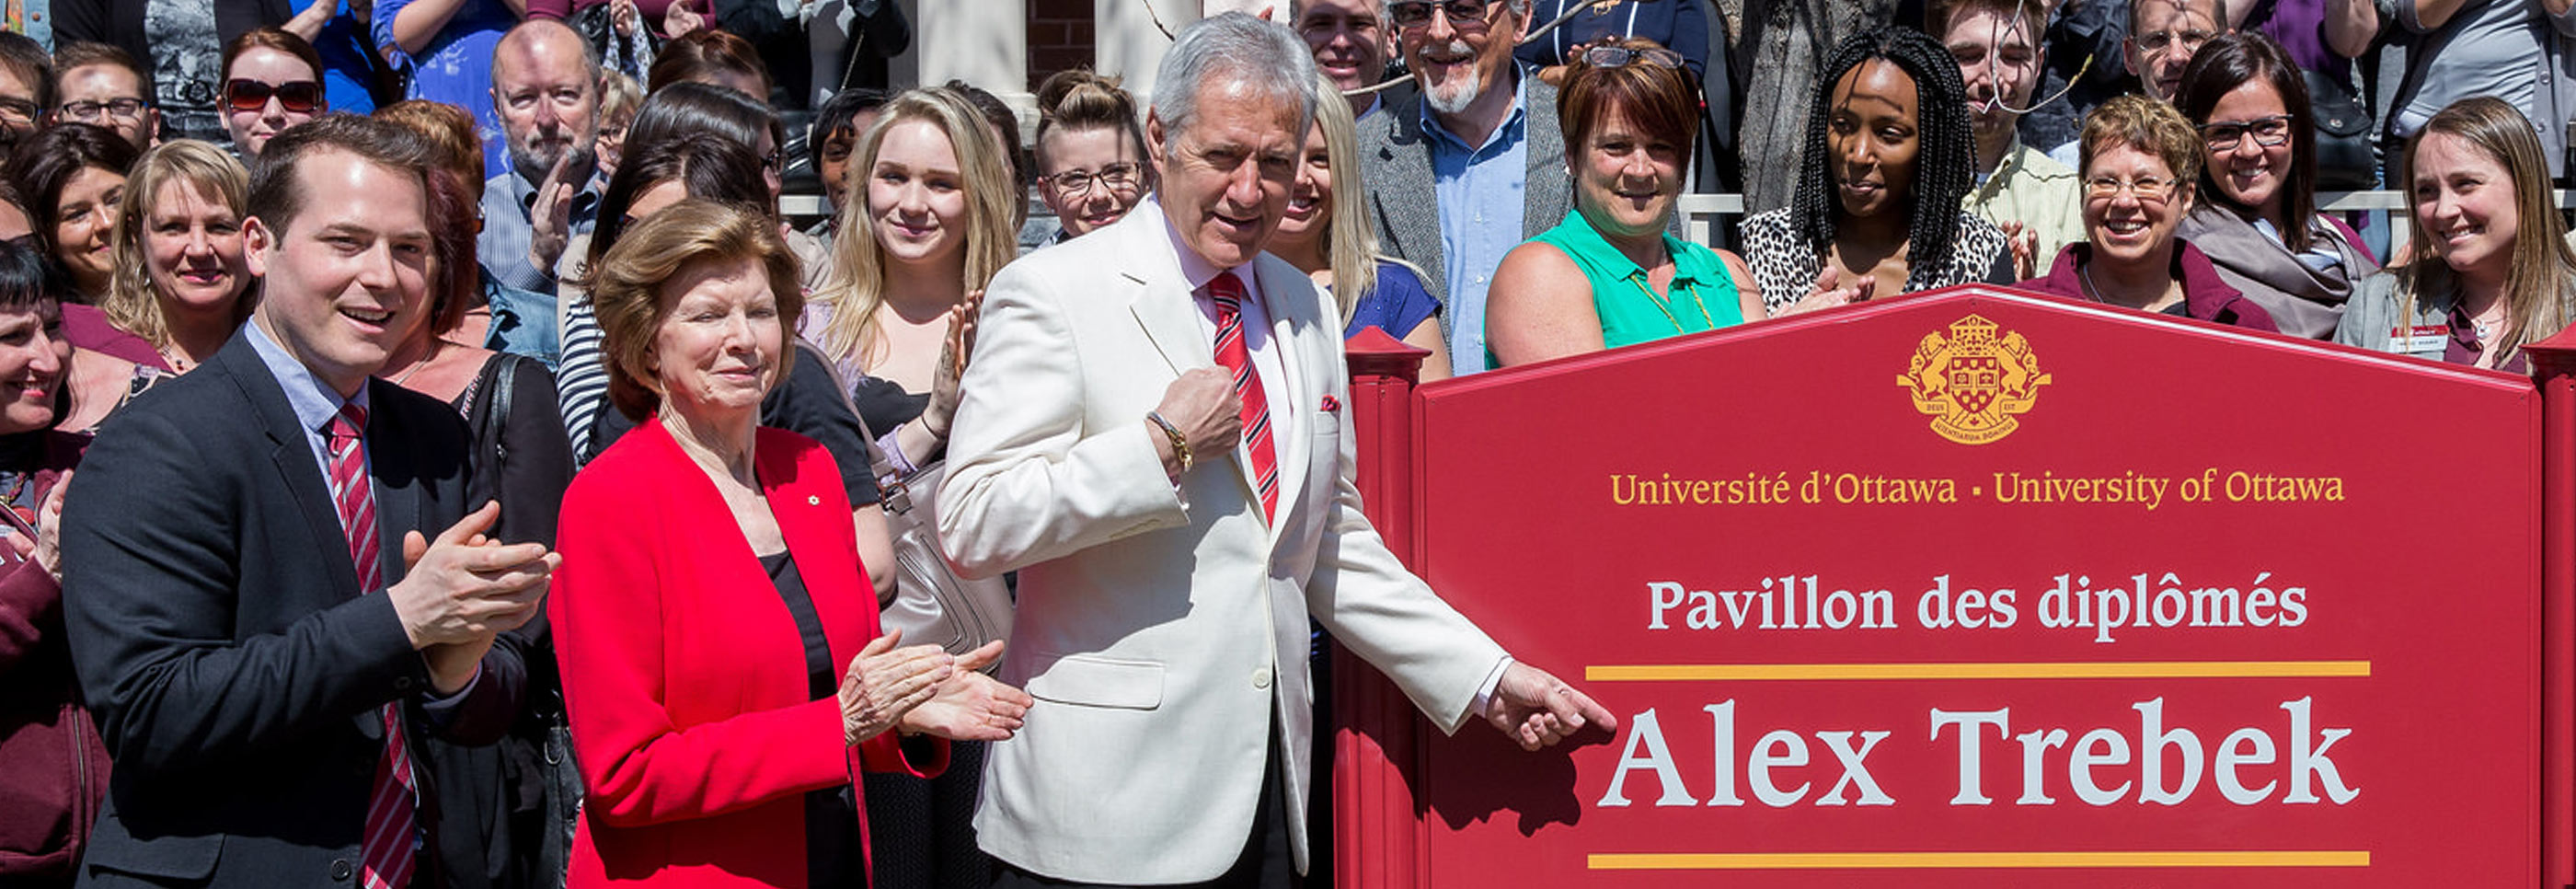 Alex Trebek standing in front of the new Alex Trebek Hall sign with people around him celebrating